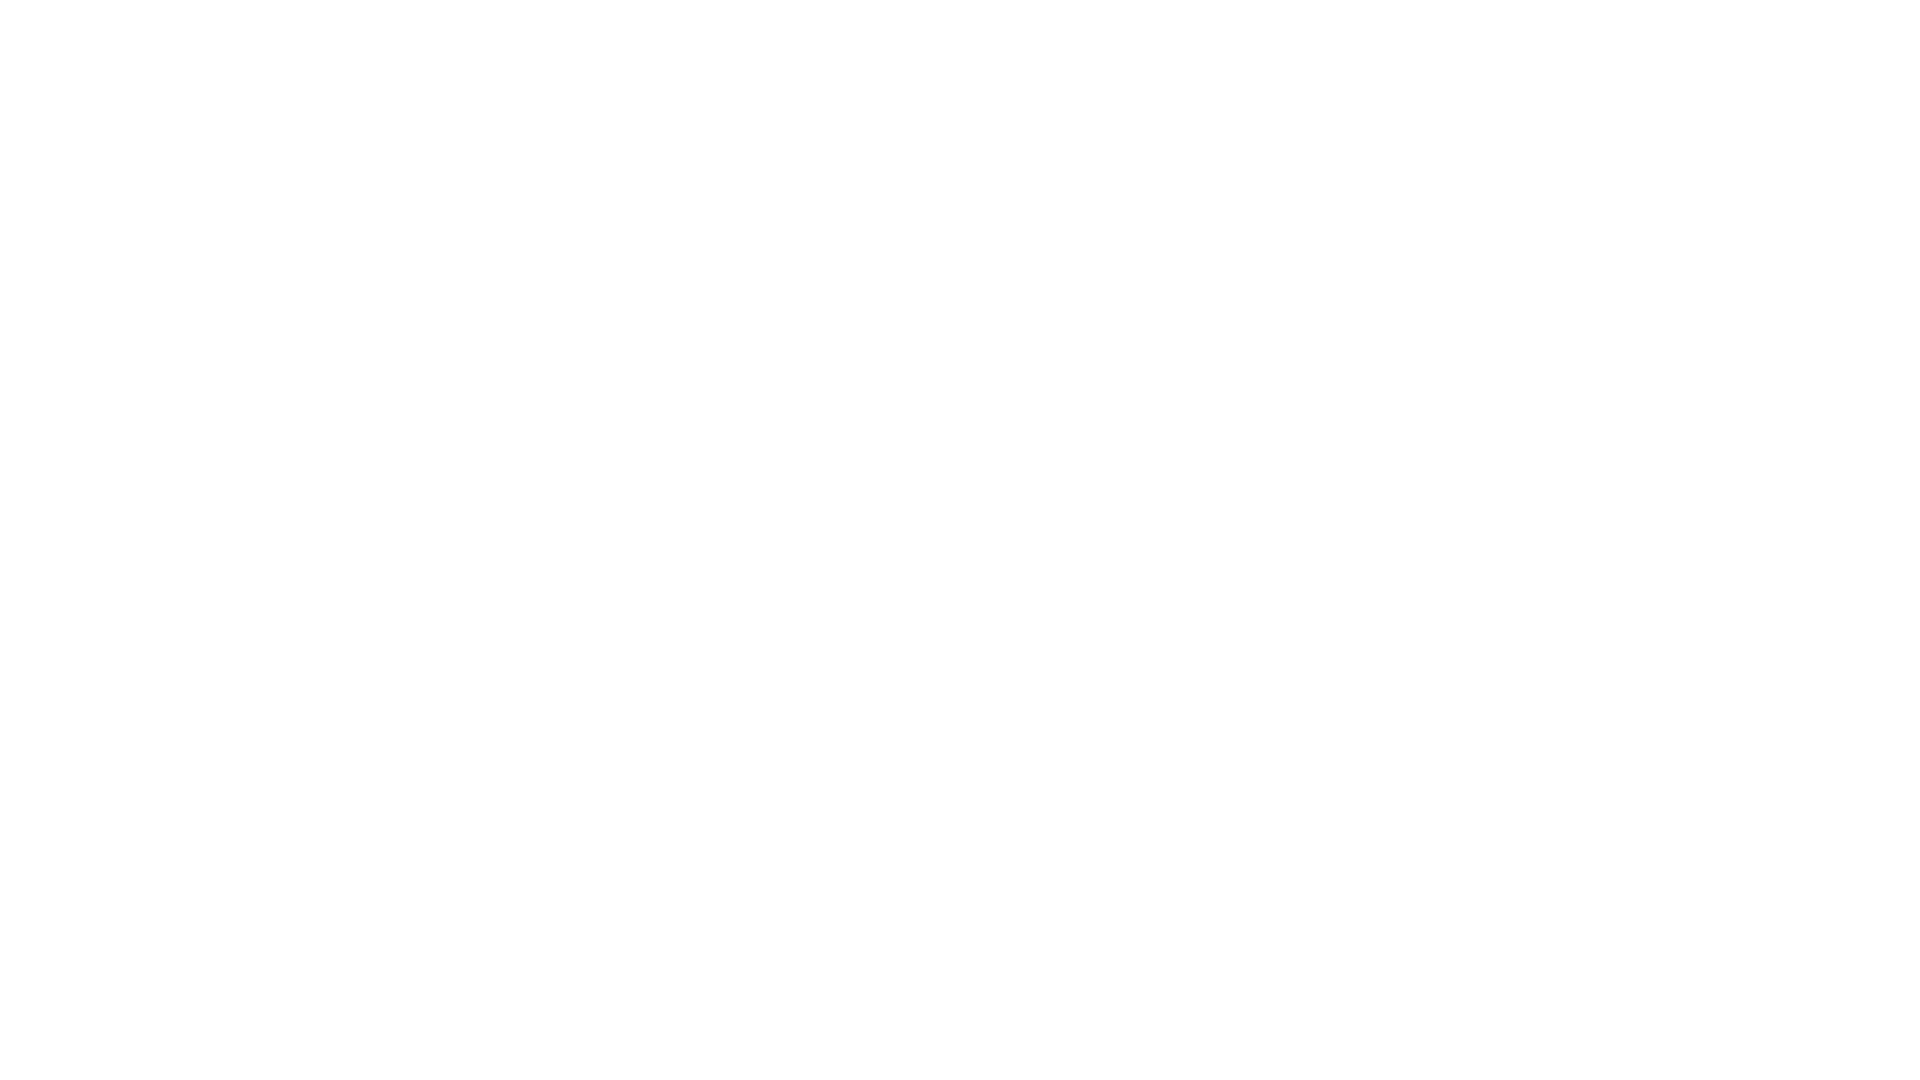 Wren Healthcare Treatments